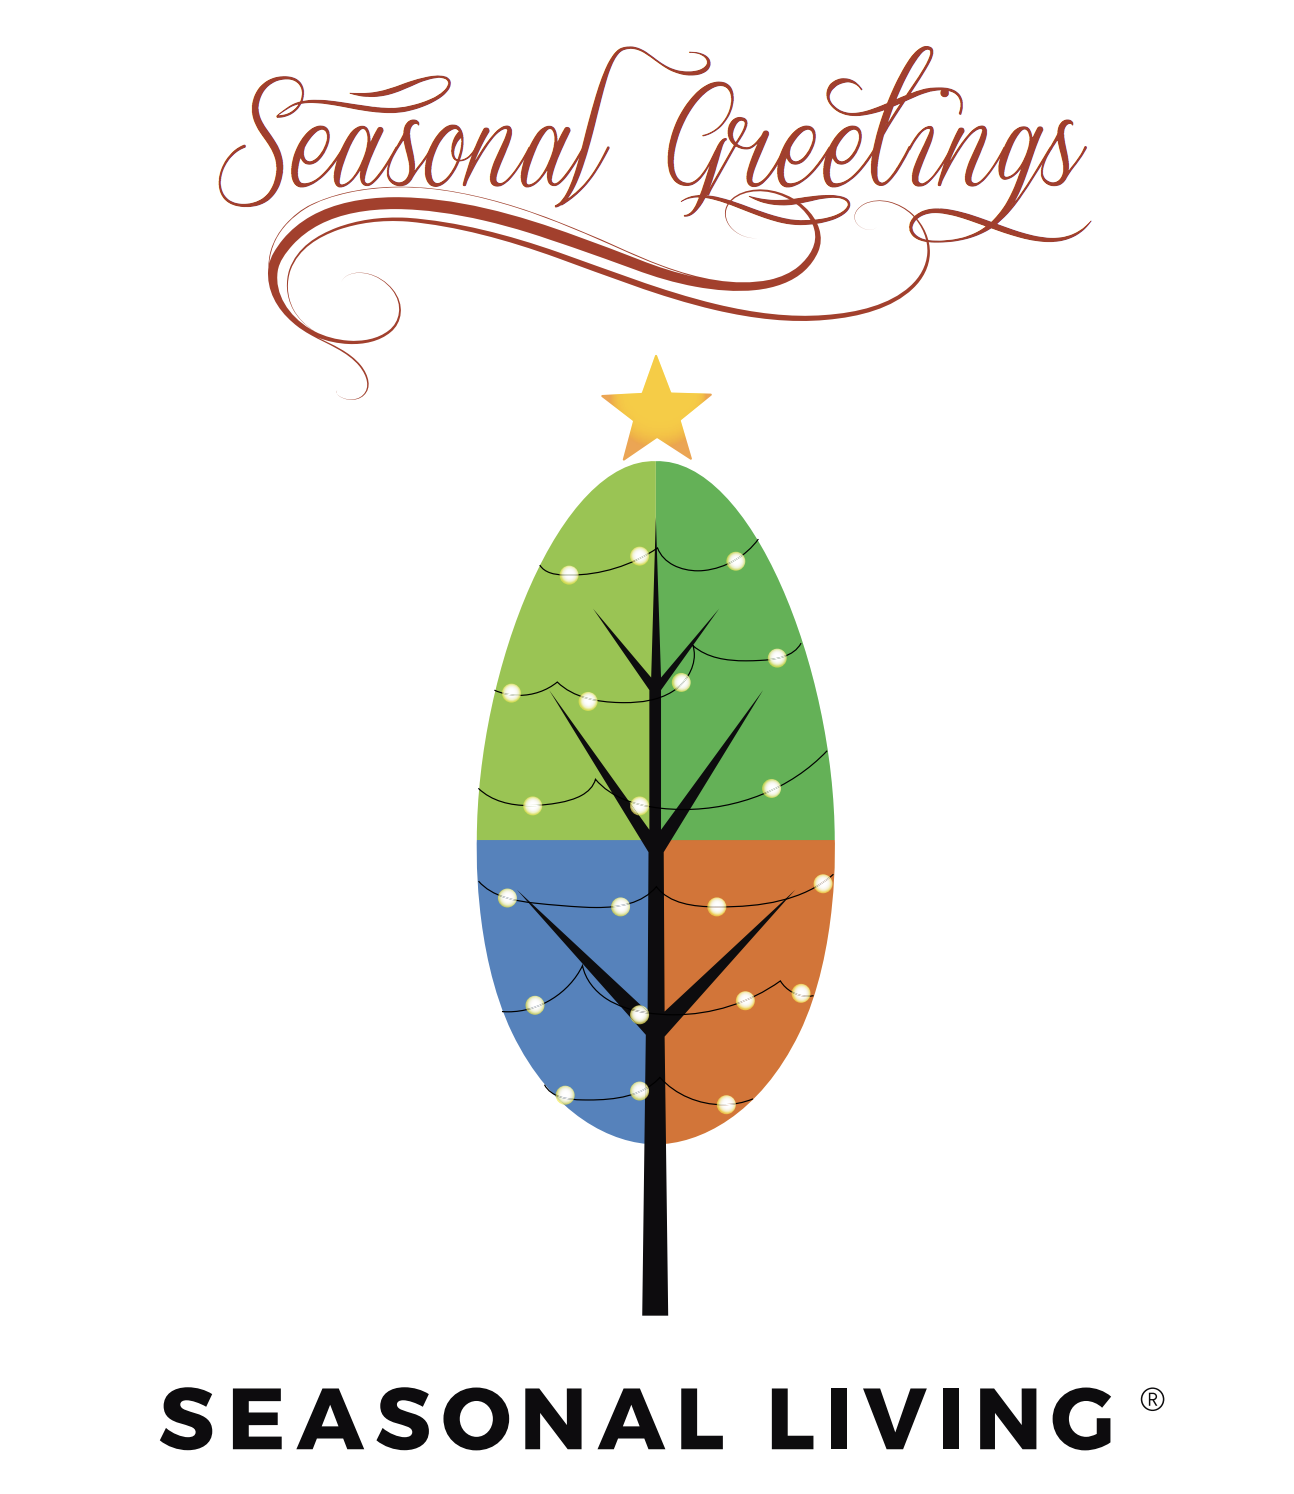 Seasonal Greetings from Seasonal Living